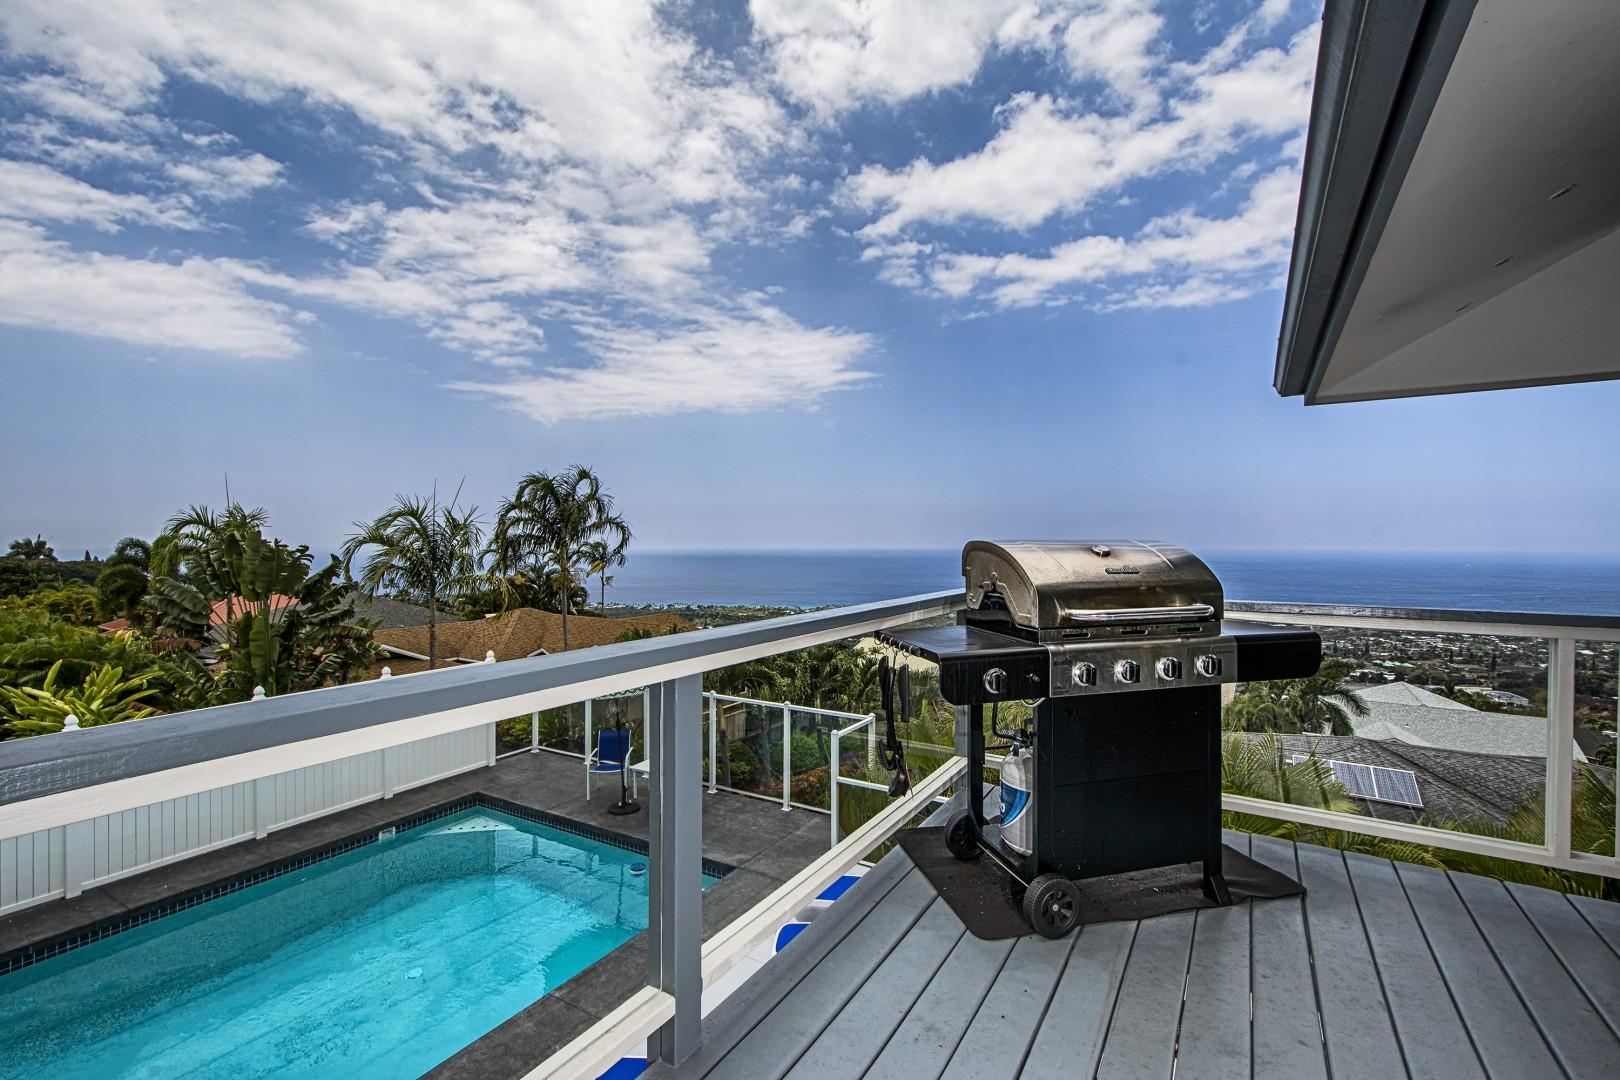 BBQ on the Lanai while taking in the breathtaking ocean views